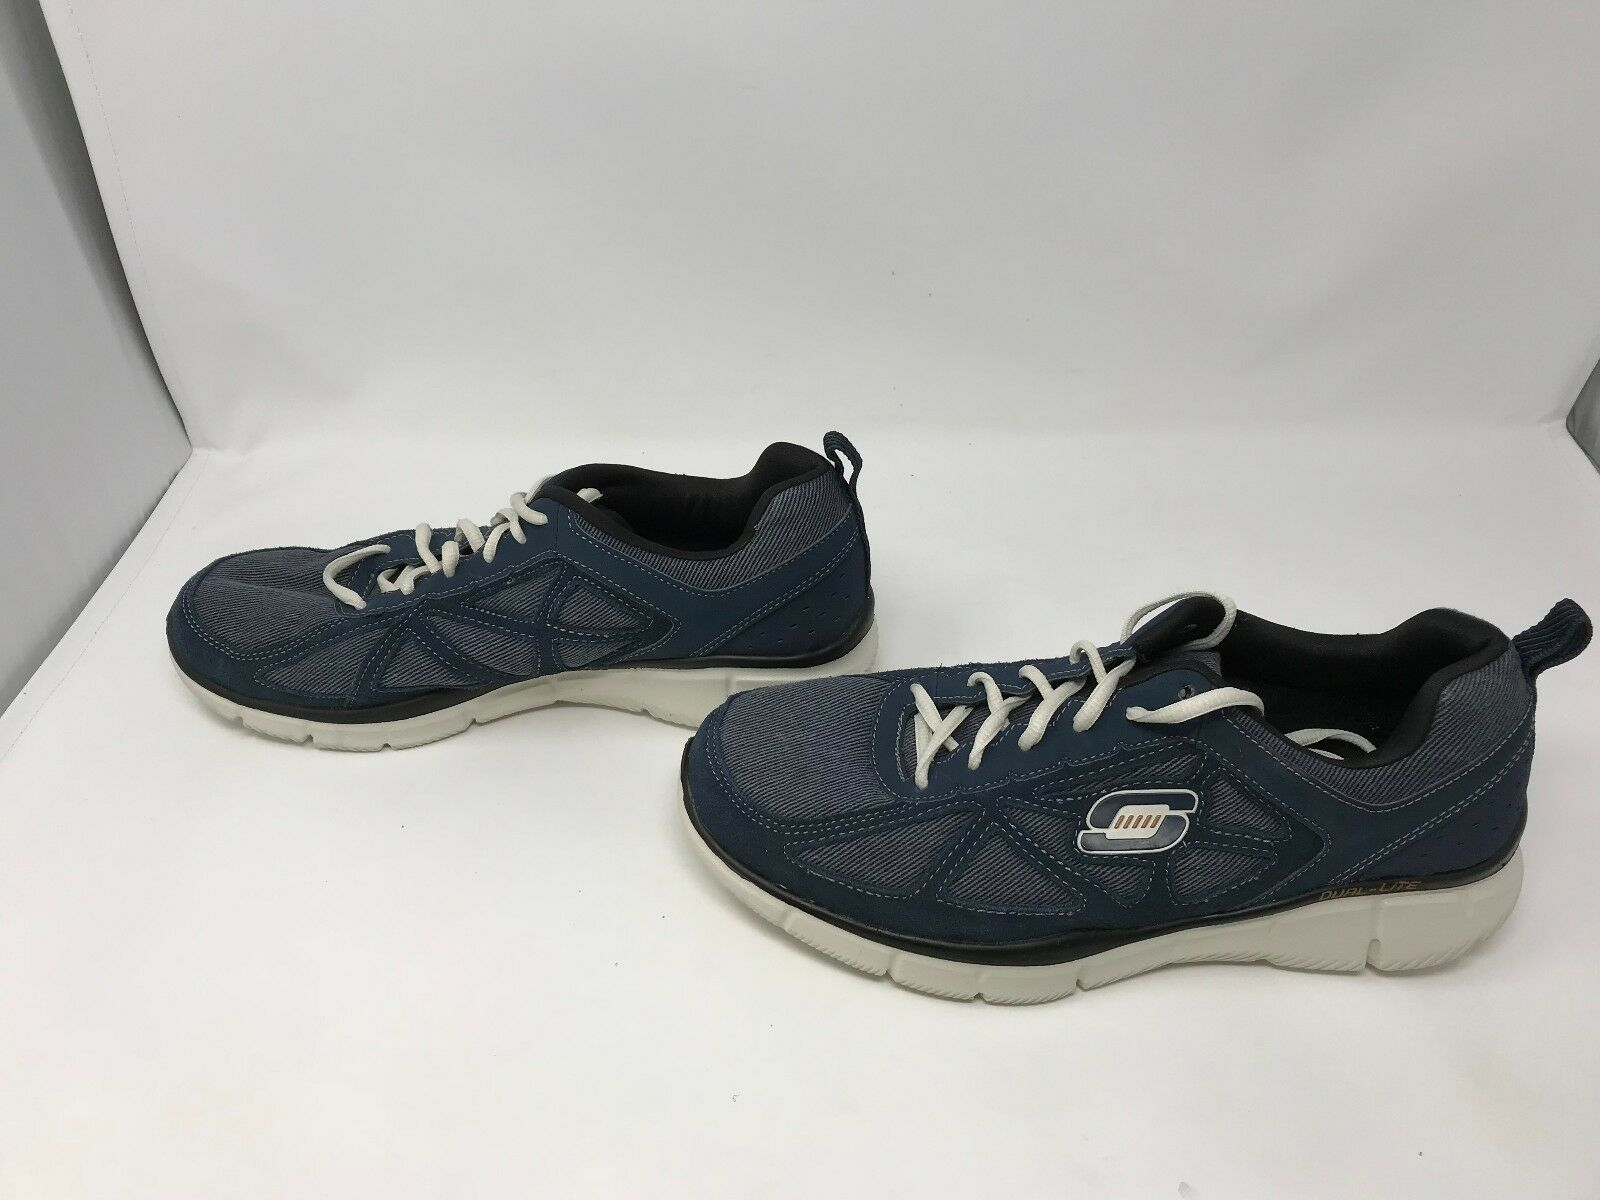 Mens Skechers Price reduction Equalizer Front Center shoes Comfortable Cheap and beautiful fashion